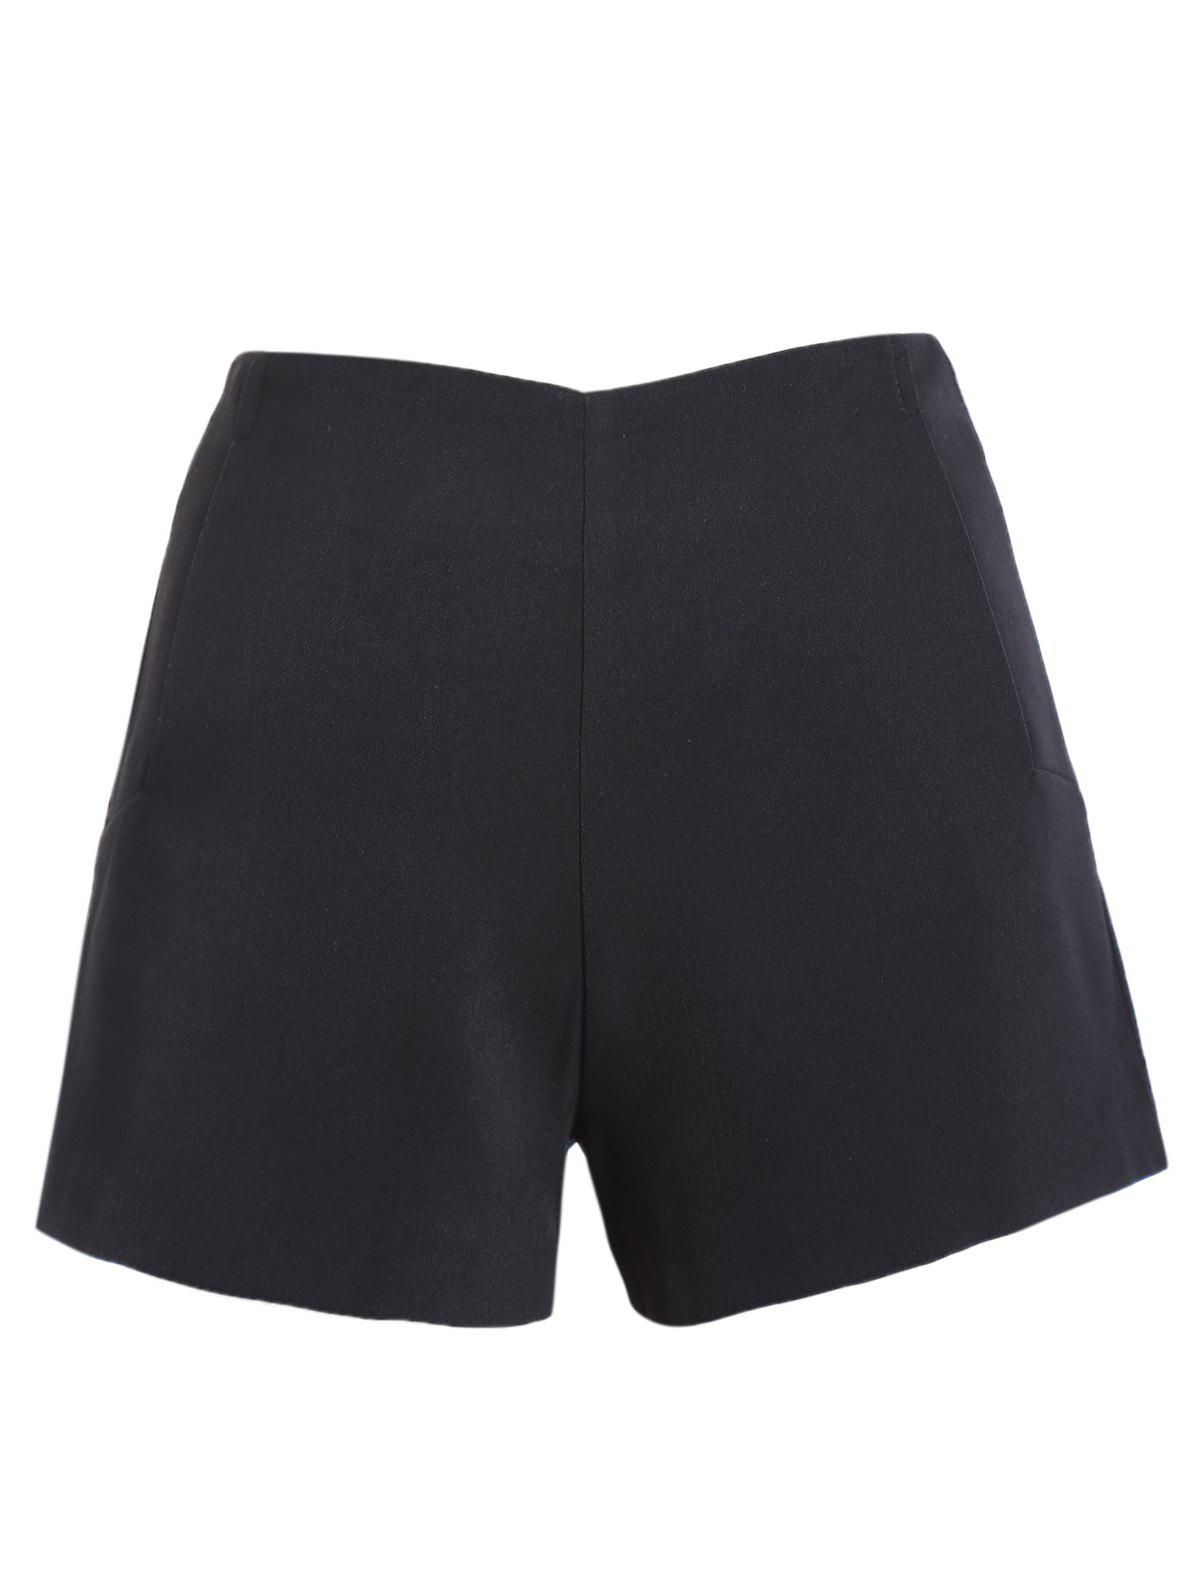 Casual Women's Solid Color Shorts - BLACK L